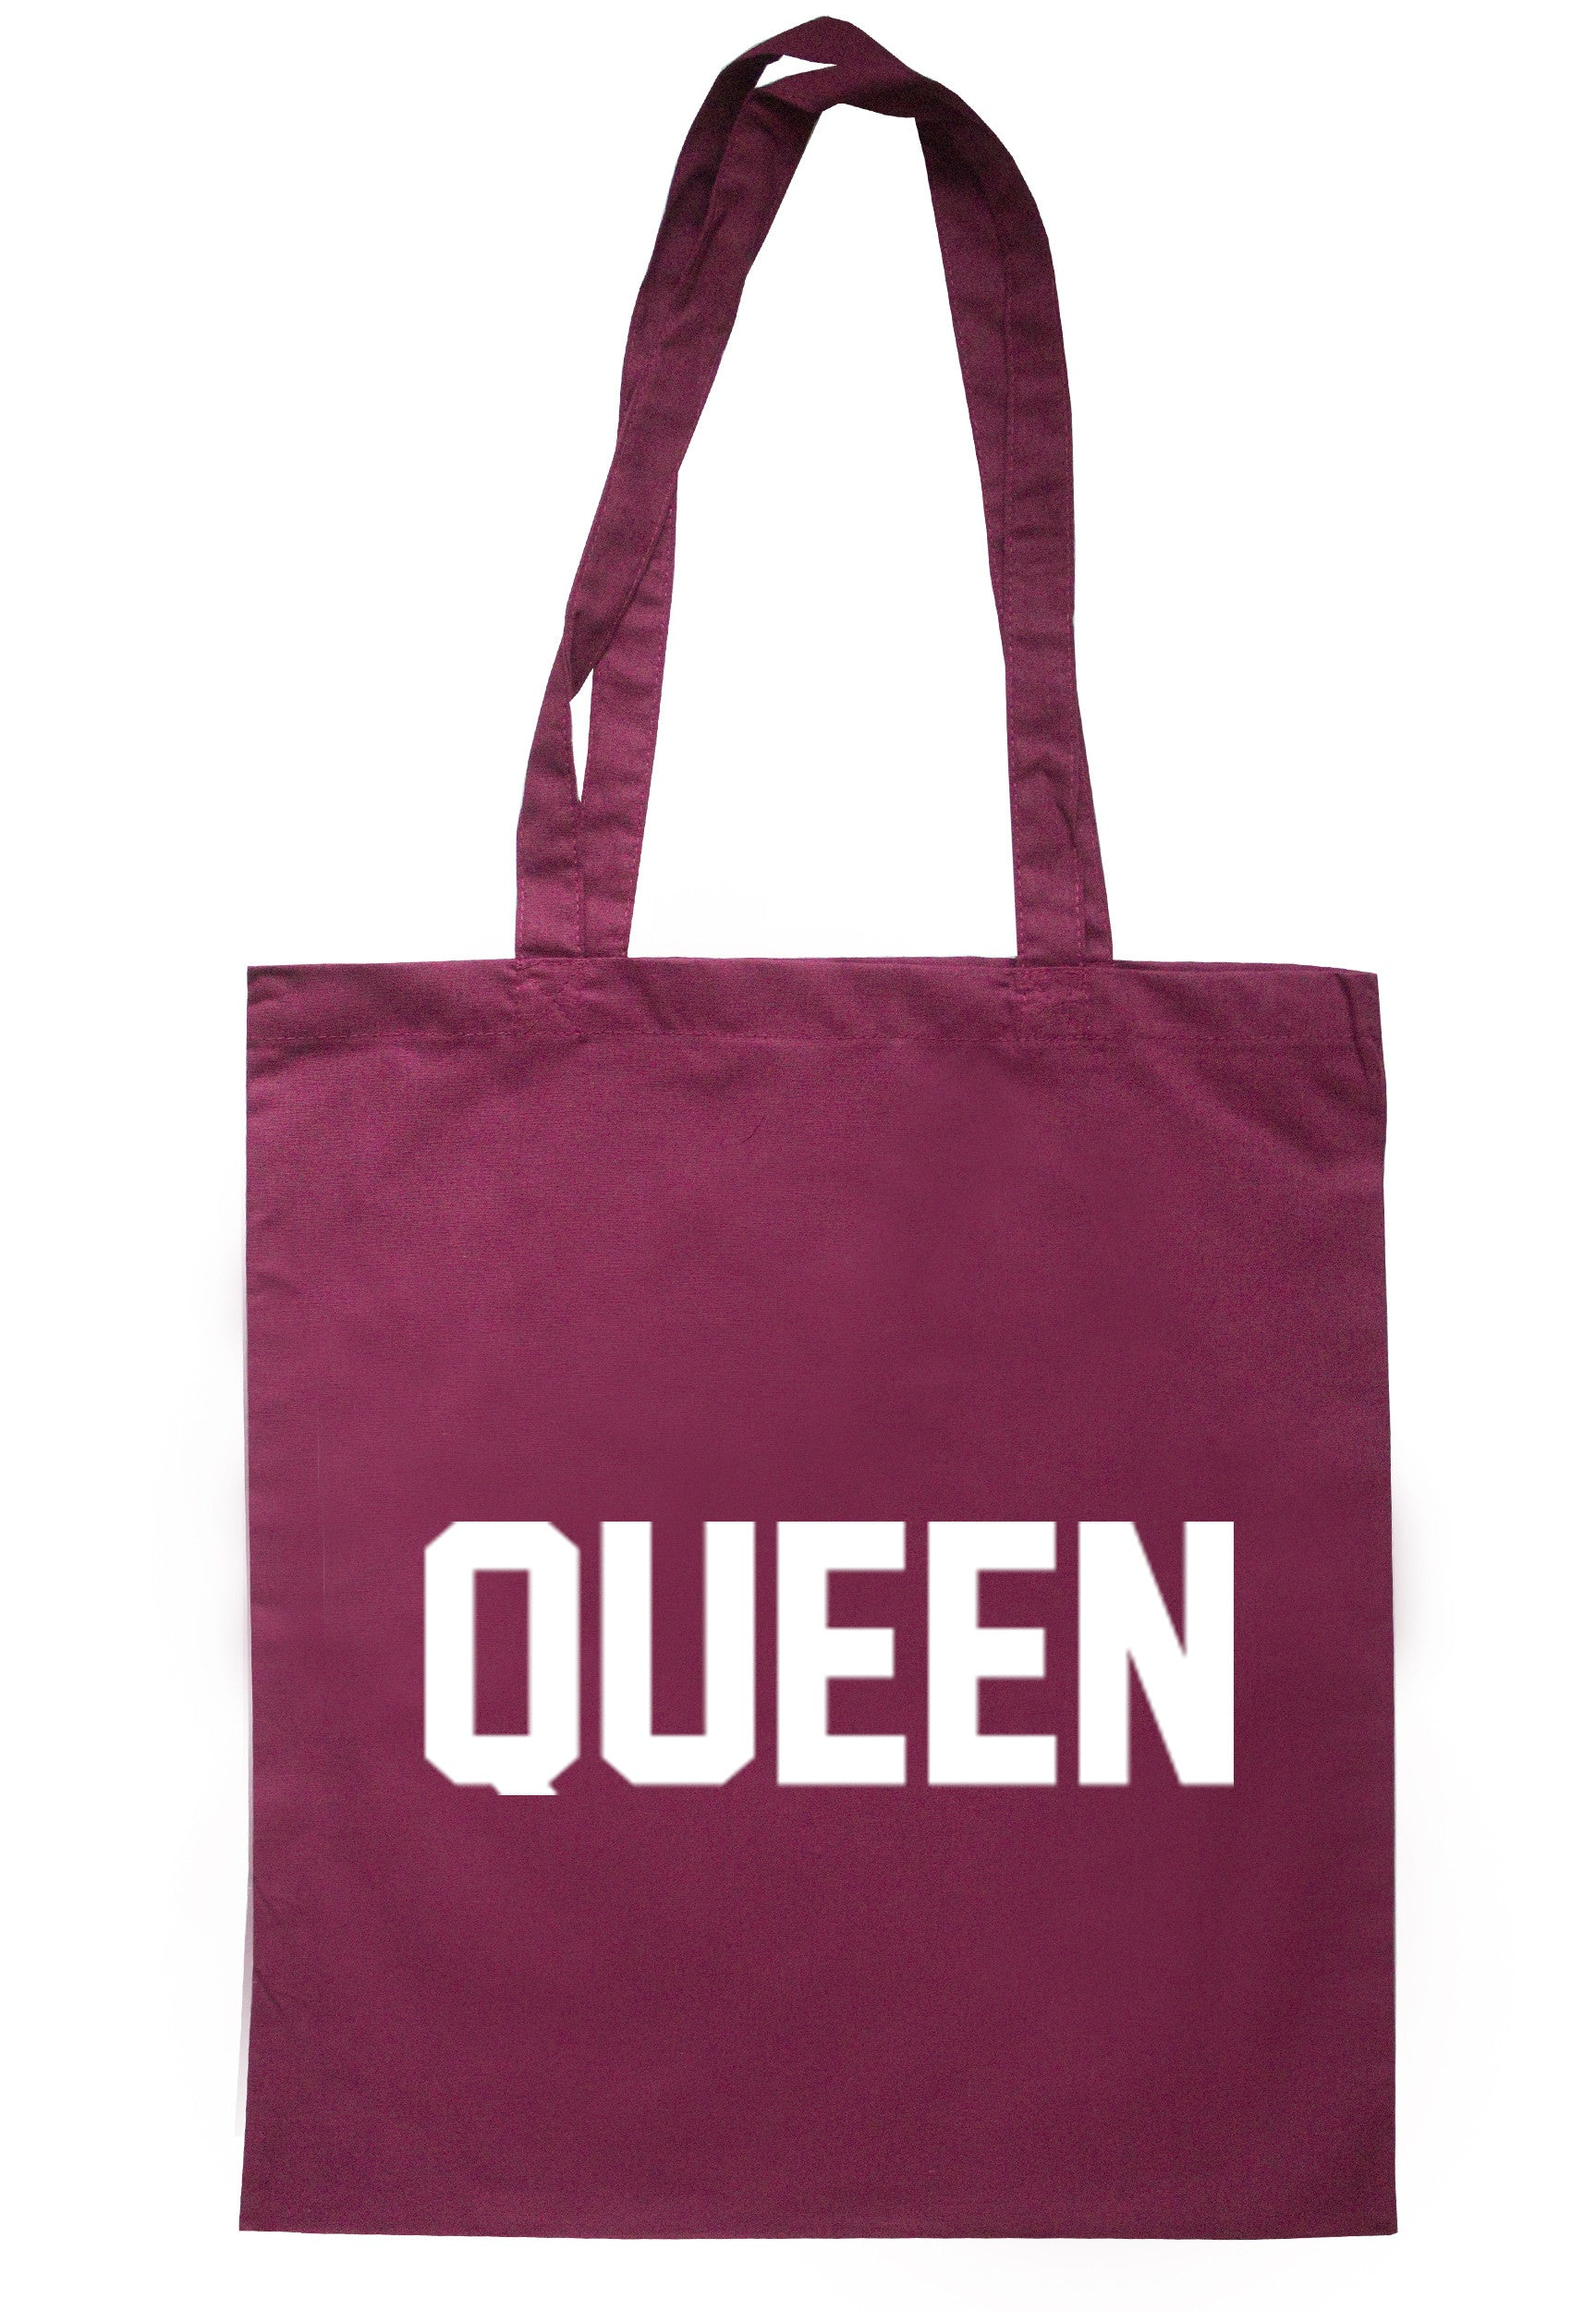 Queen Tote Bag TB0244 - Illustrated Identity Ltd.